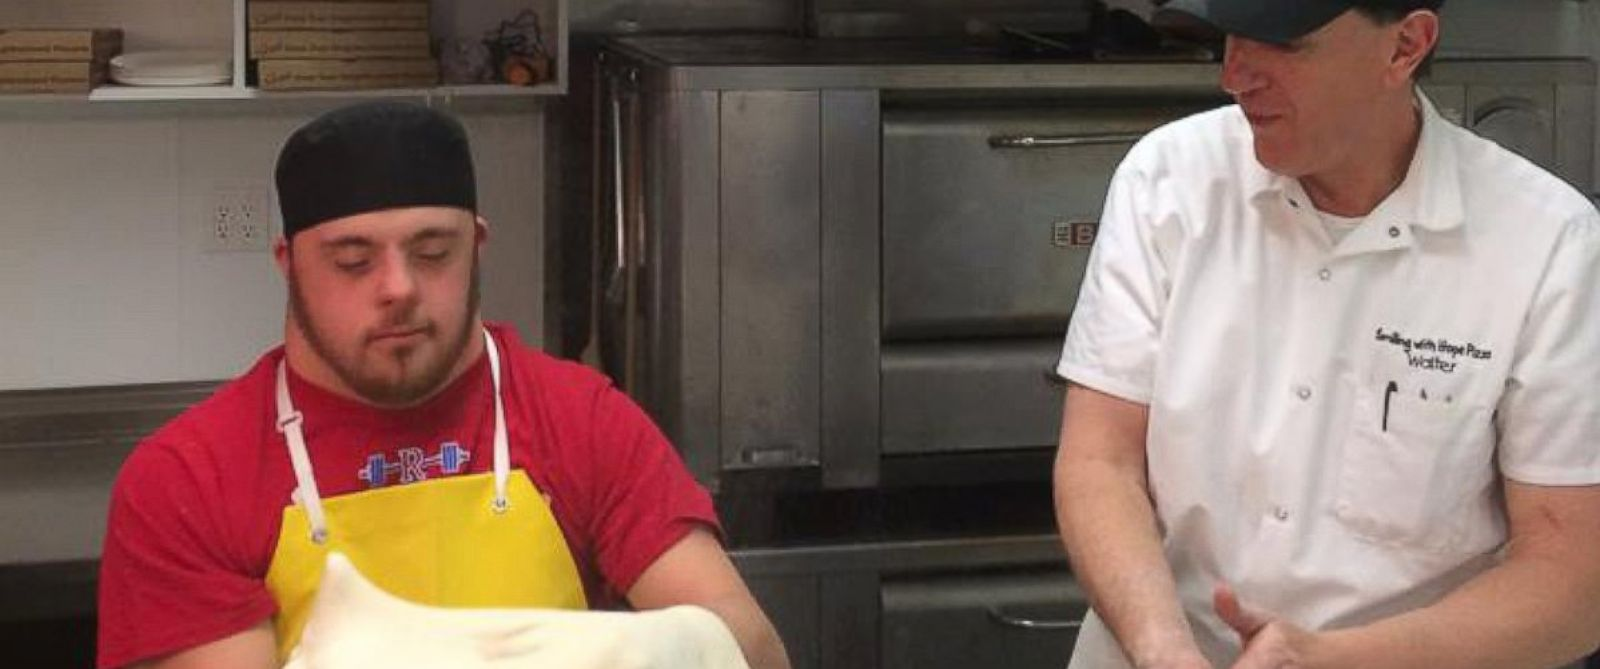 PHOTO: Walter Gloshinski trains employees with developmental disabilities at Smiling With Hope Pizza in Reno, Nevada.